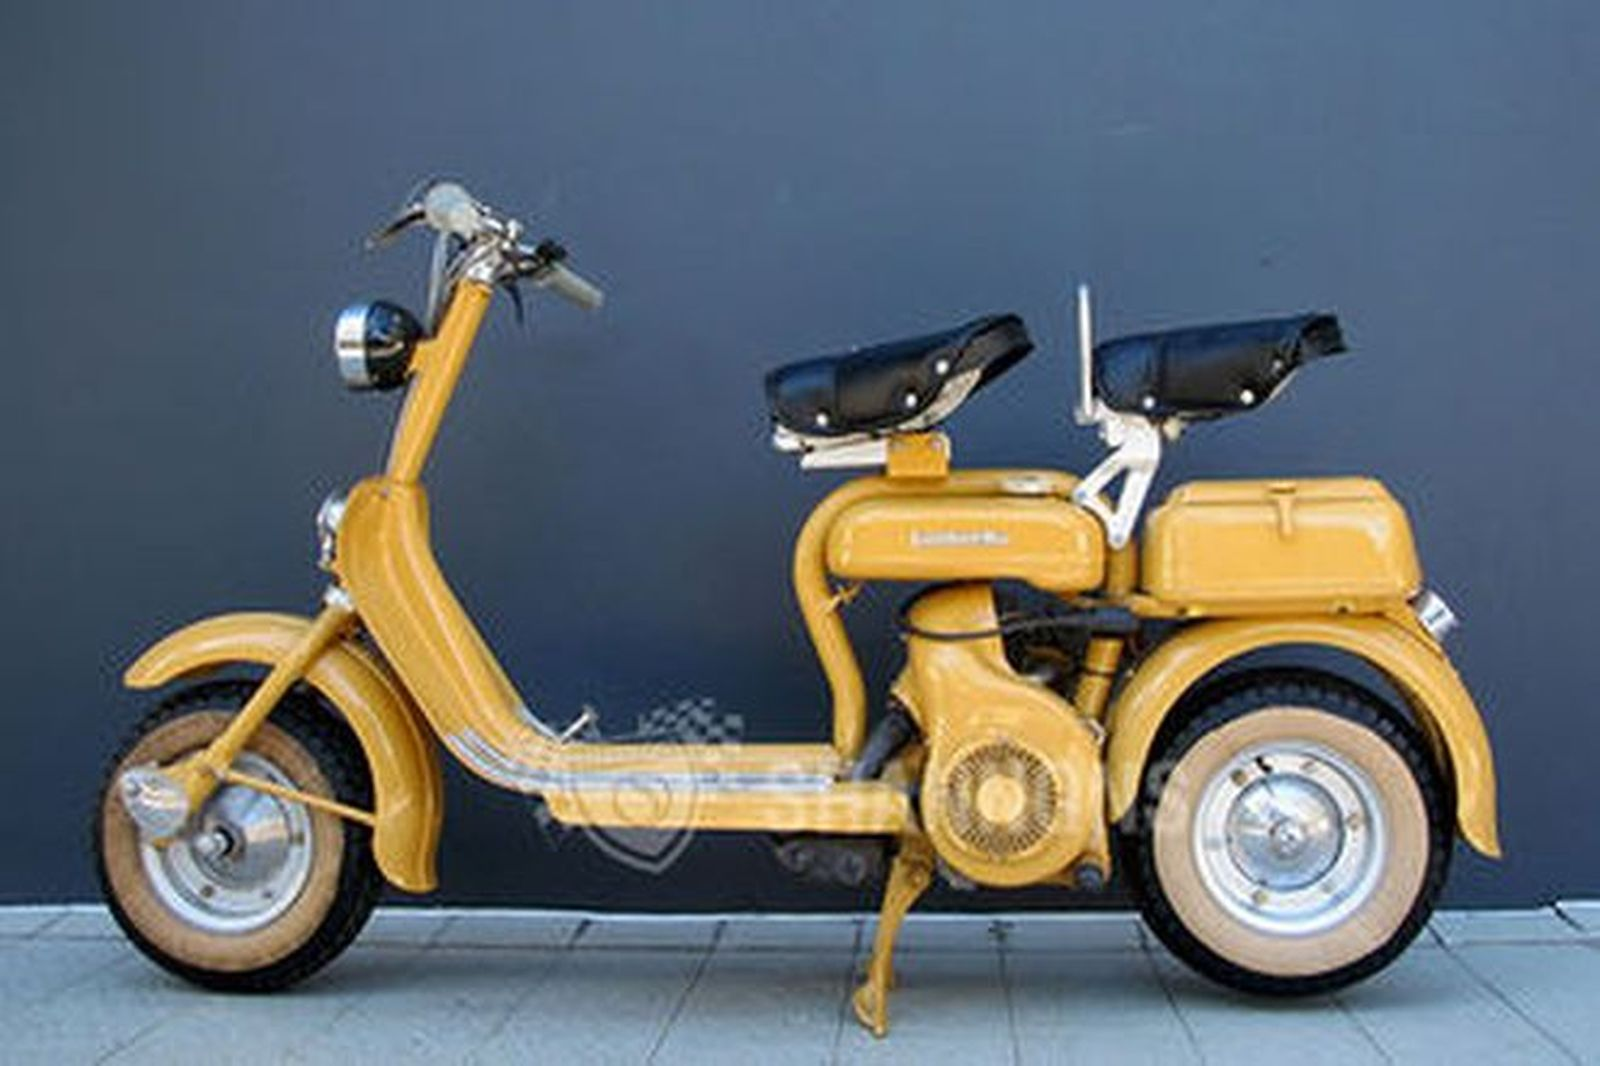 Lambretta Model D 150cc Scooter